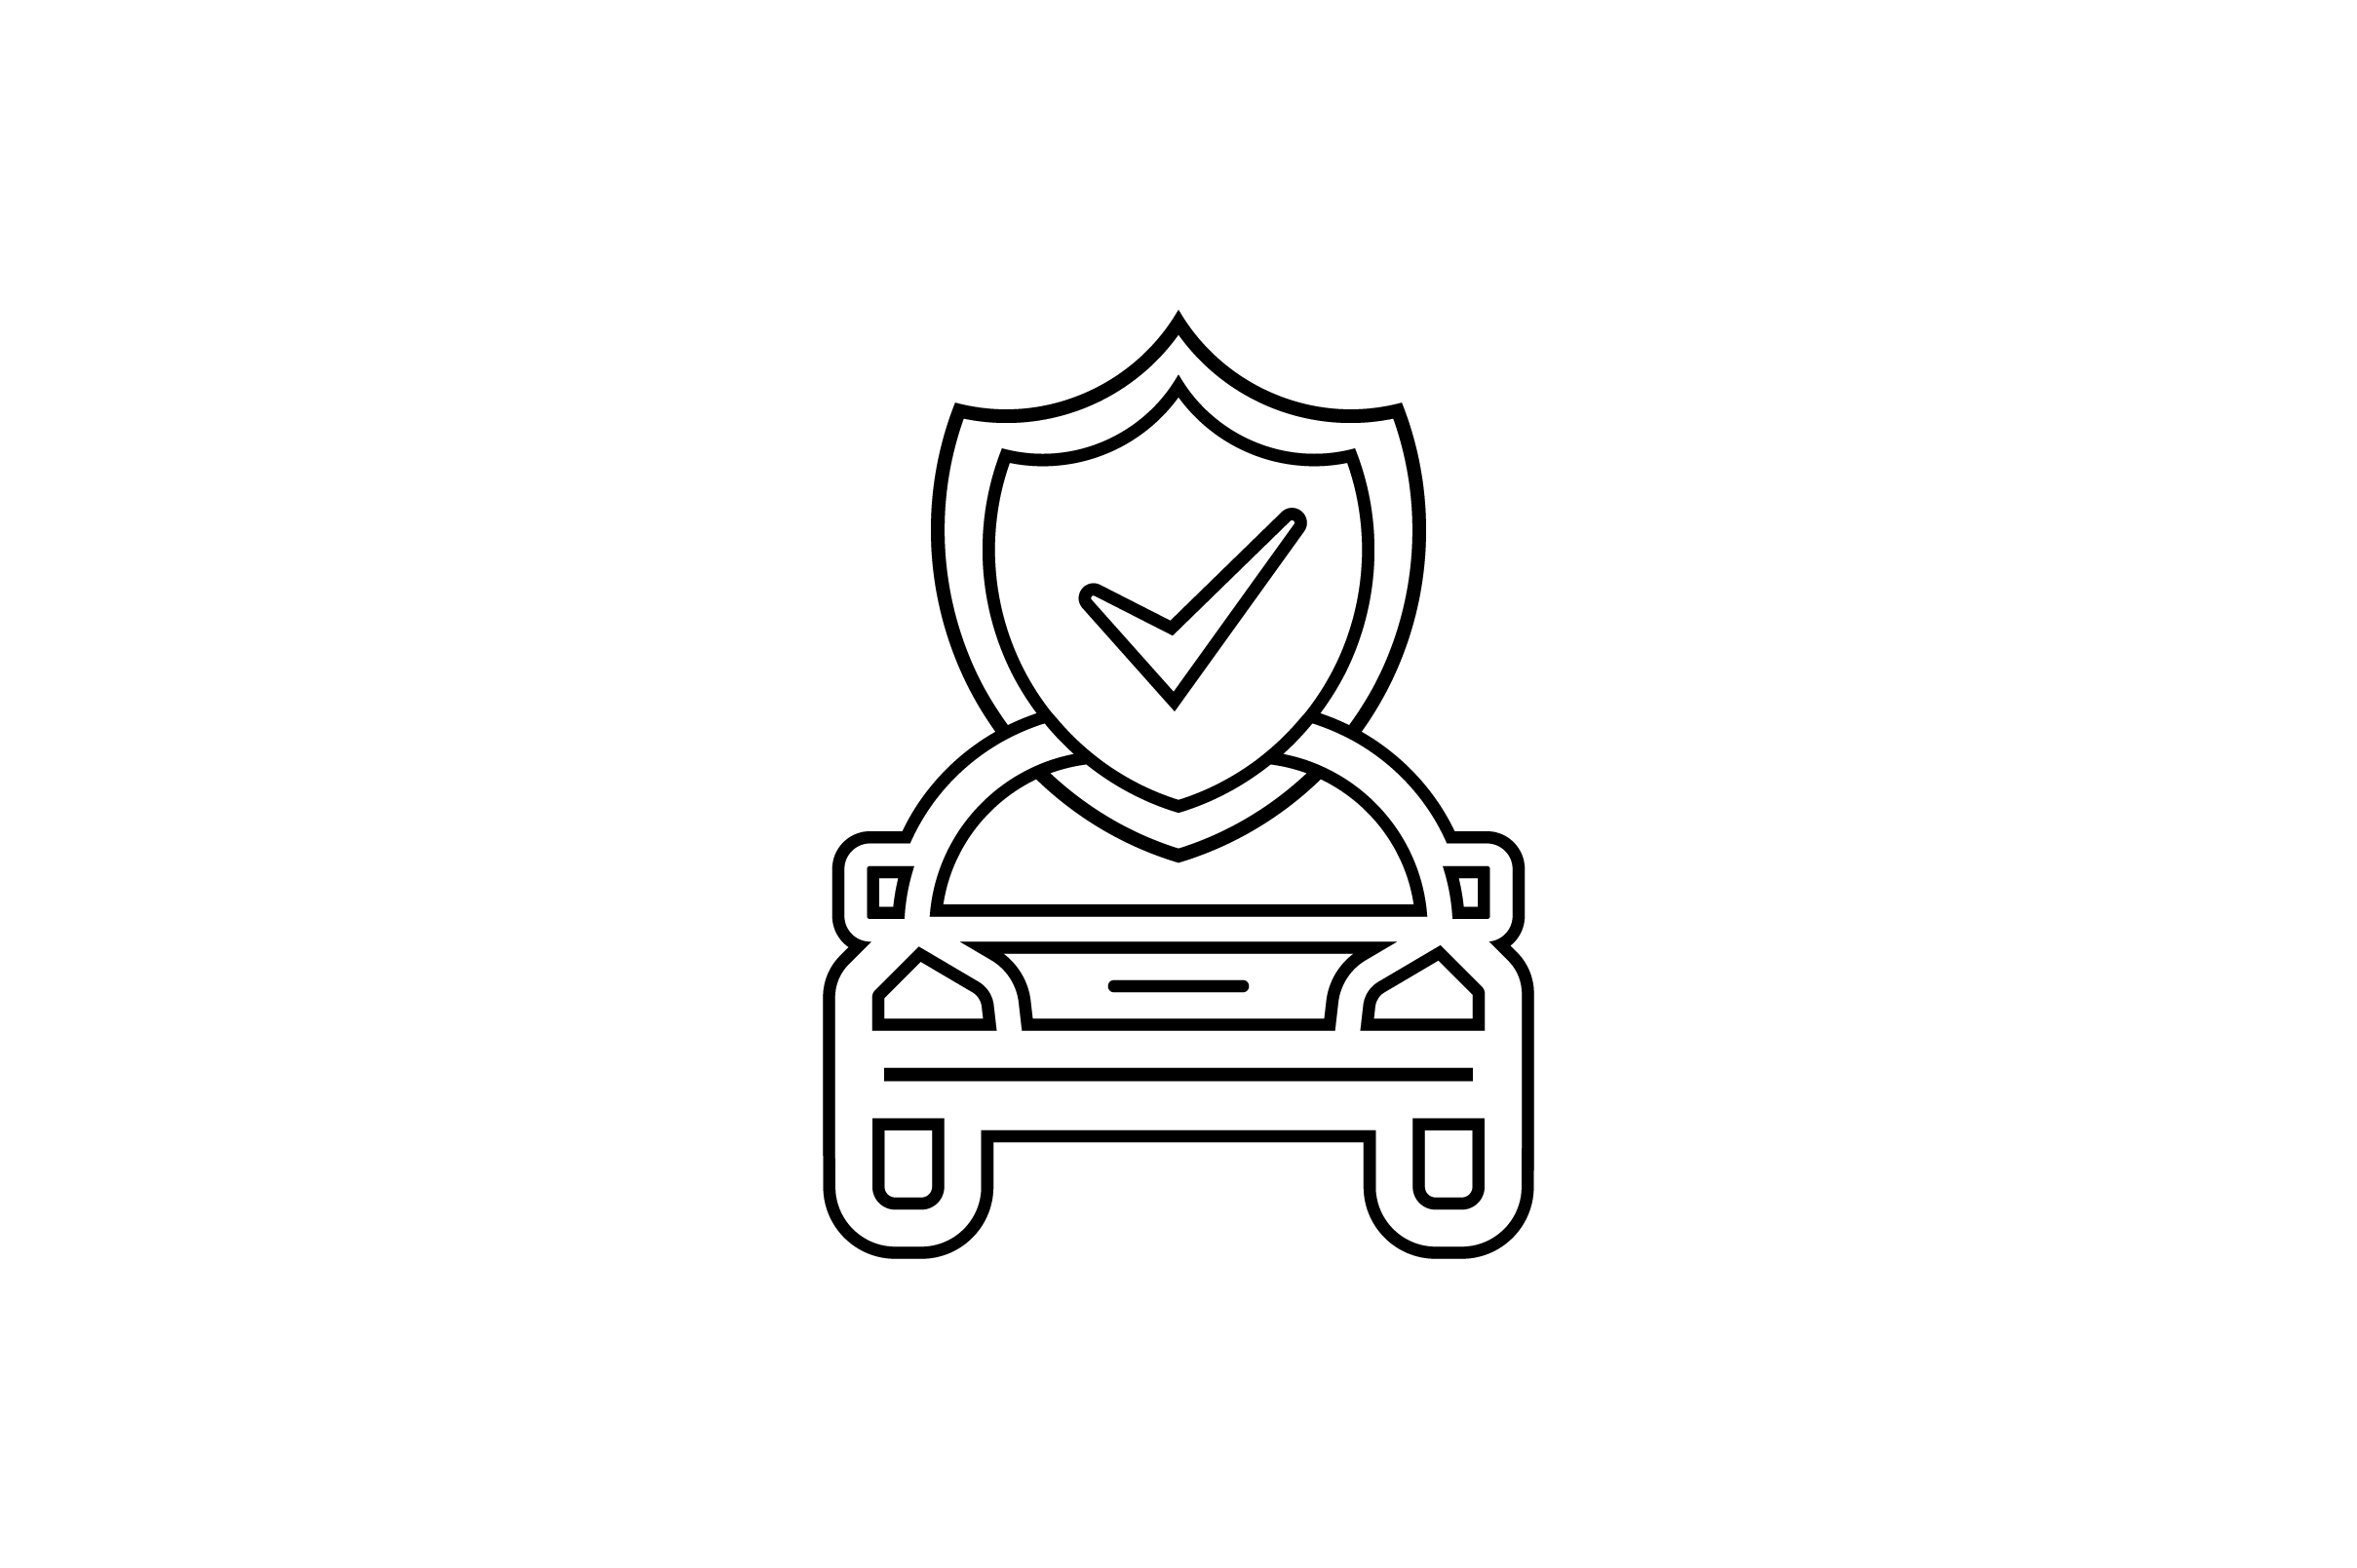 Download Free Car Shield With Check Mark Icon Vector Graphic By Riduwan Molla for Cricut Explore, Silhouette and other cutting machines.